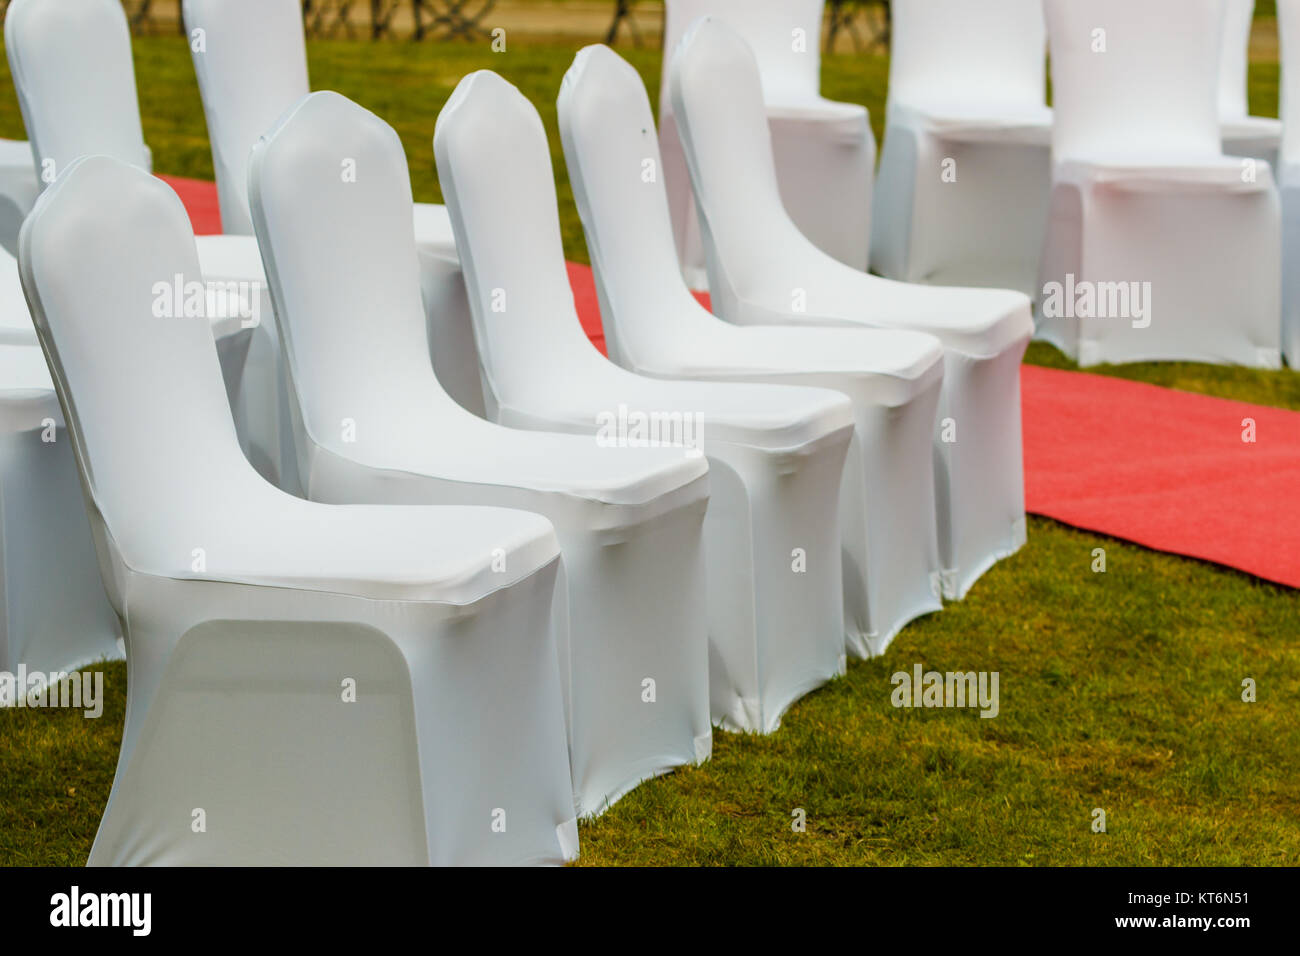 Awe Inspiring Many Wedding Chairs With White Elegant Covers On Green Grass Alphanode Cool Chair Designs And Ideas Alphanodeonline